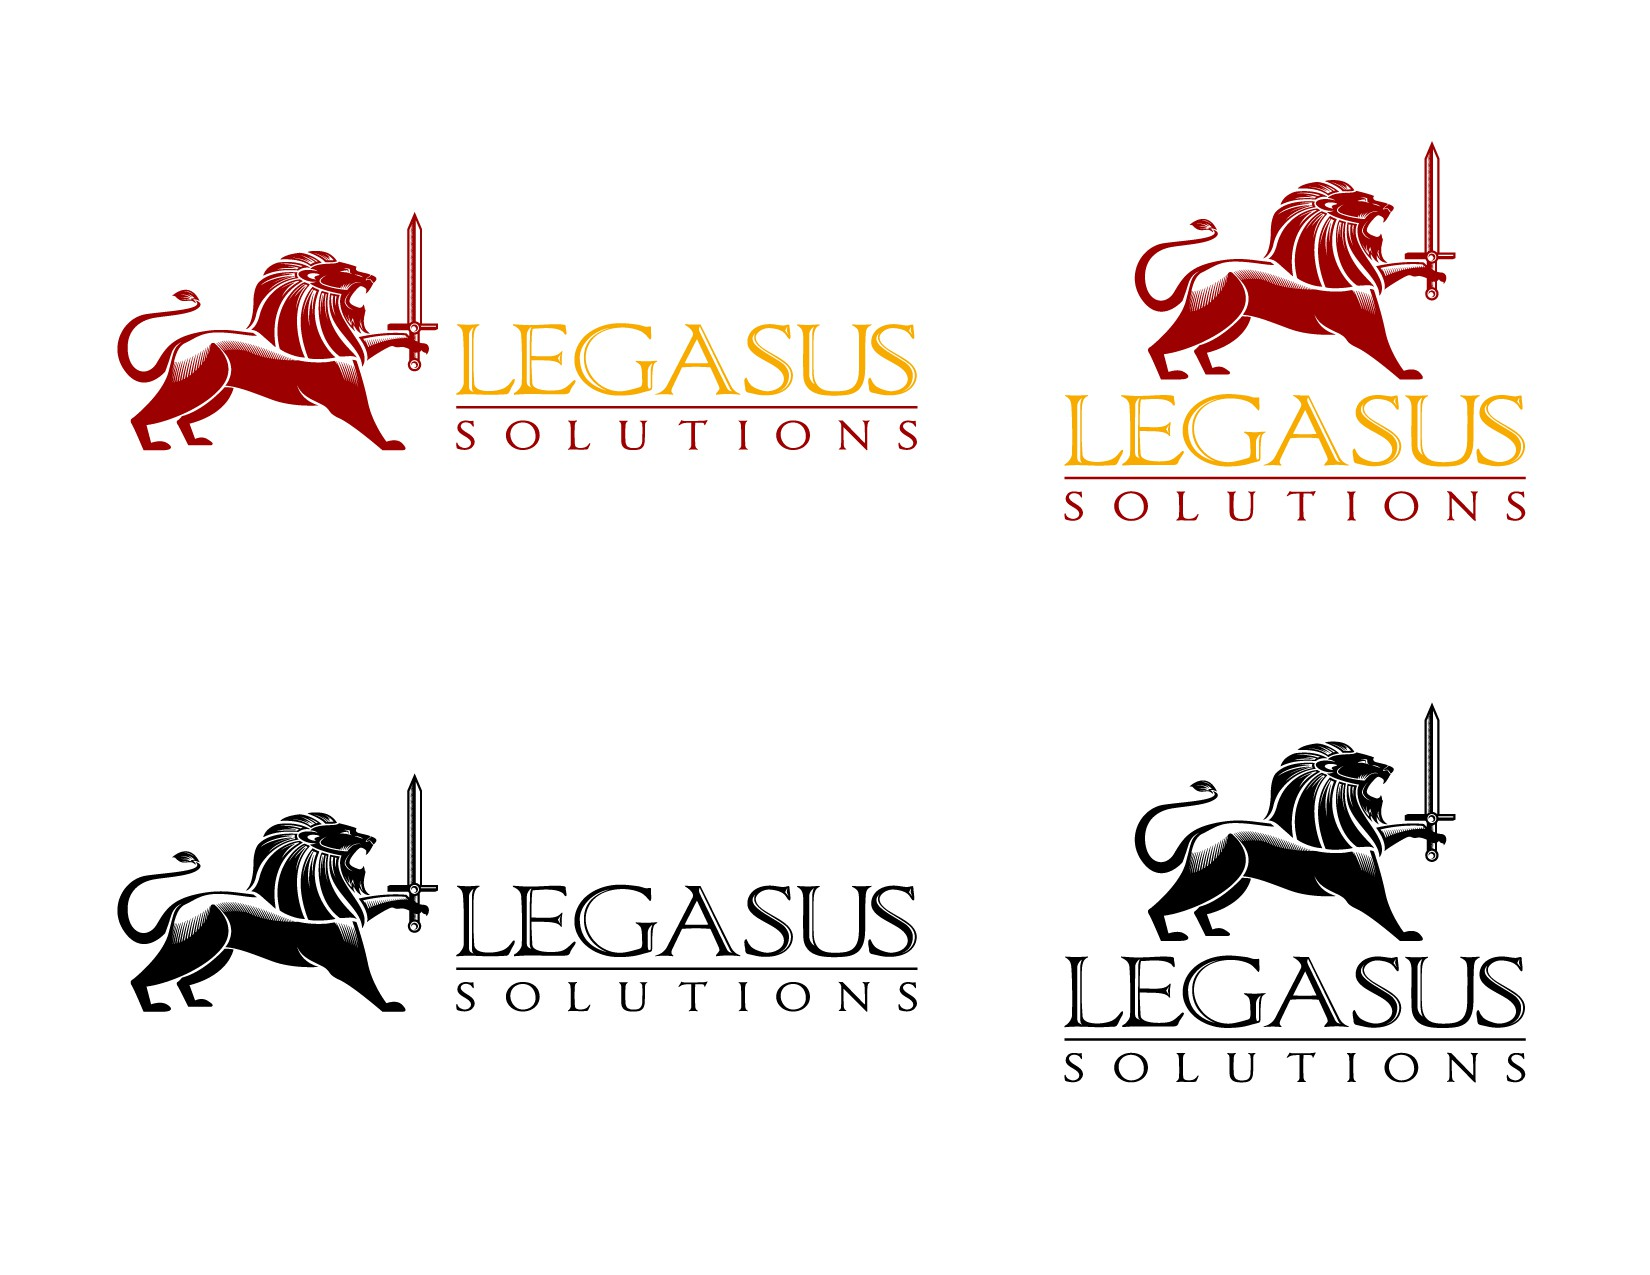 LEGASUS SOLUTIONS is looking for a Modern, Corporate Logo Design!